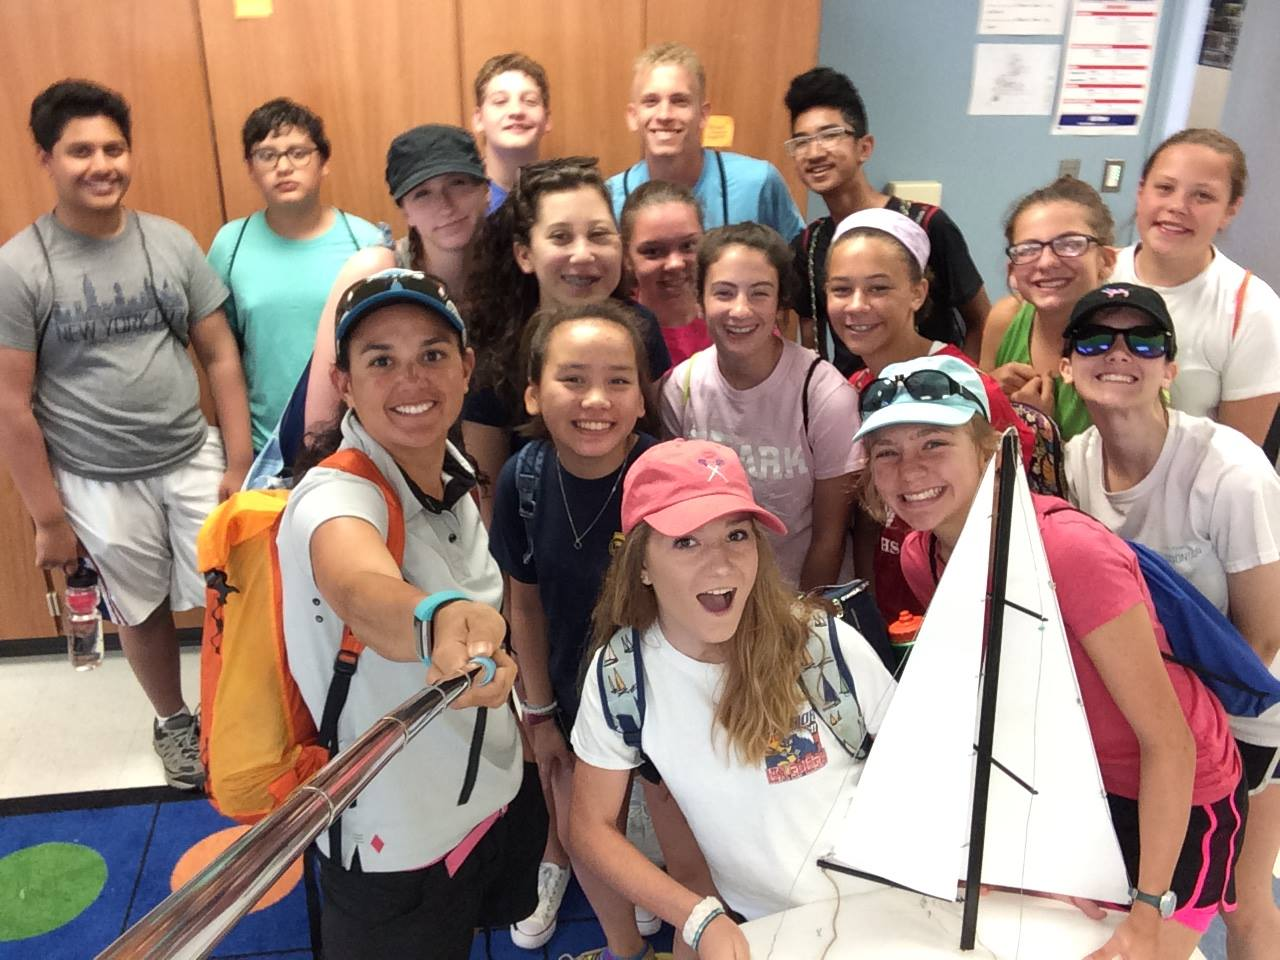 McKenna (with selfie stick) and students at the National Sailing Hall of Fame in June. (facebook.com/nshof)